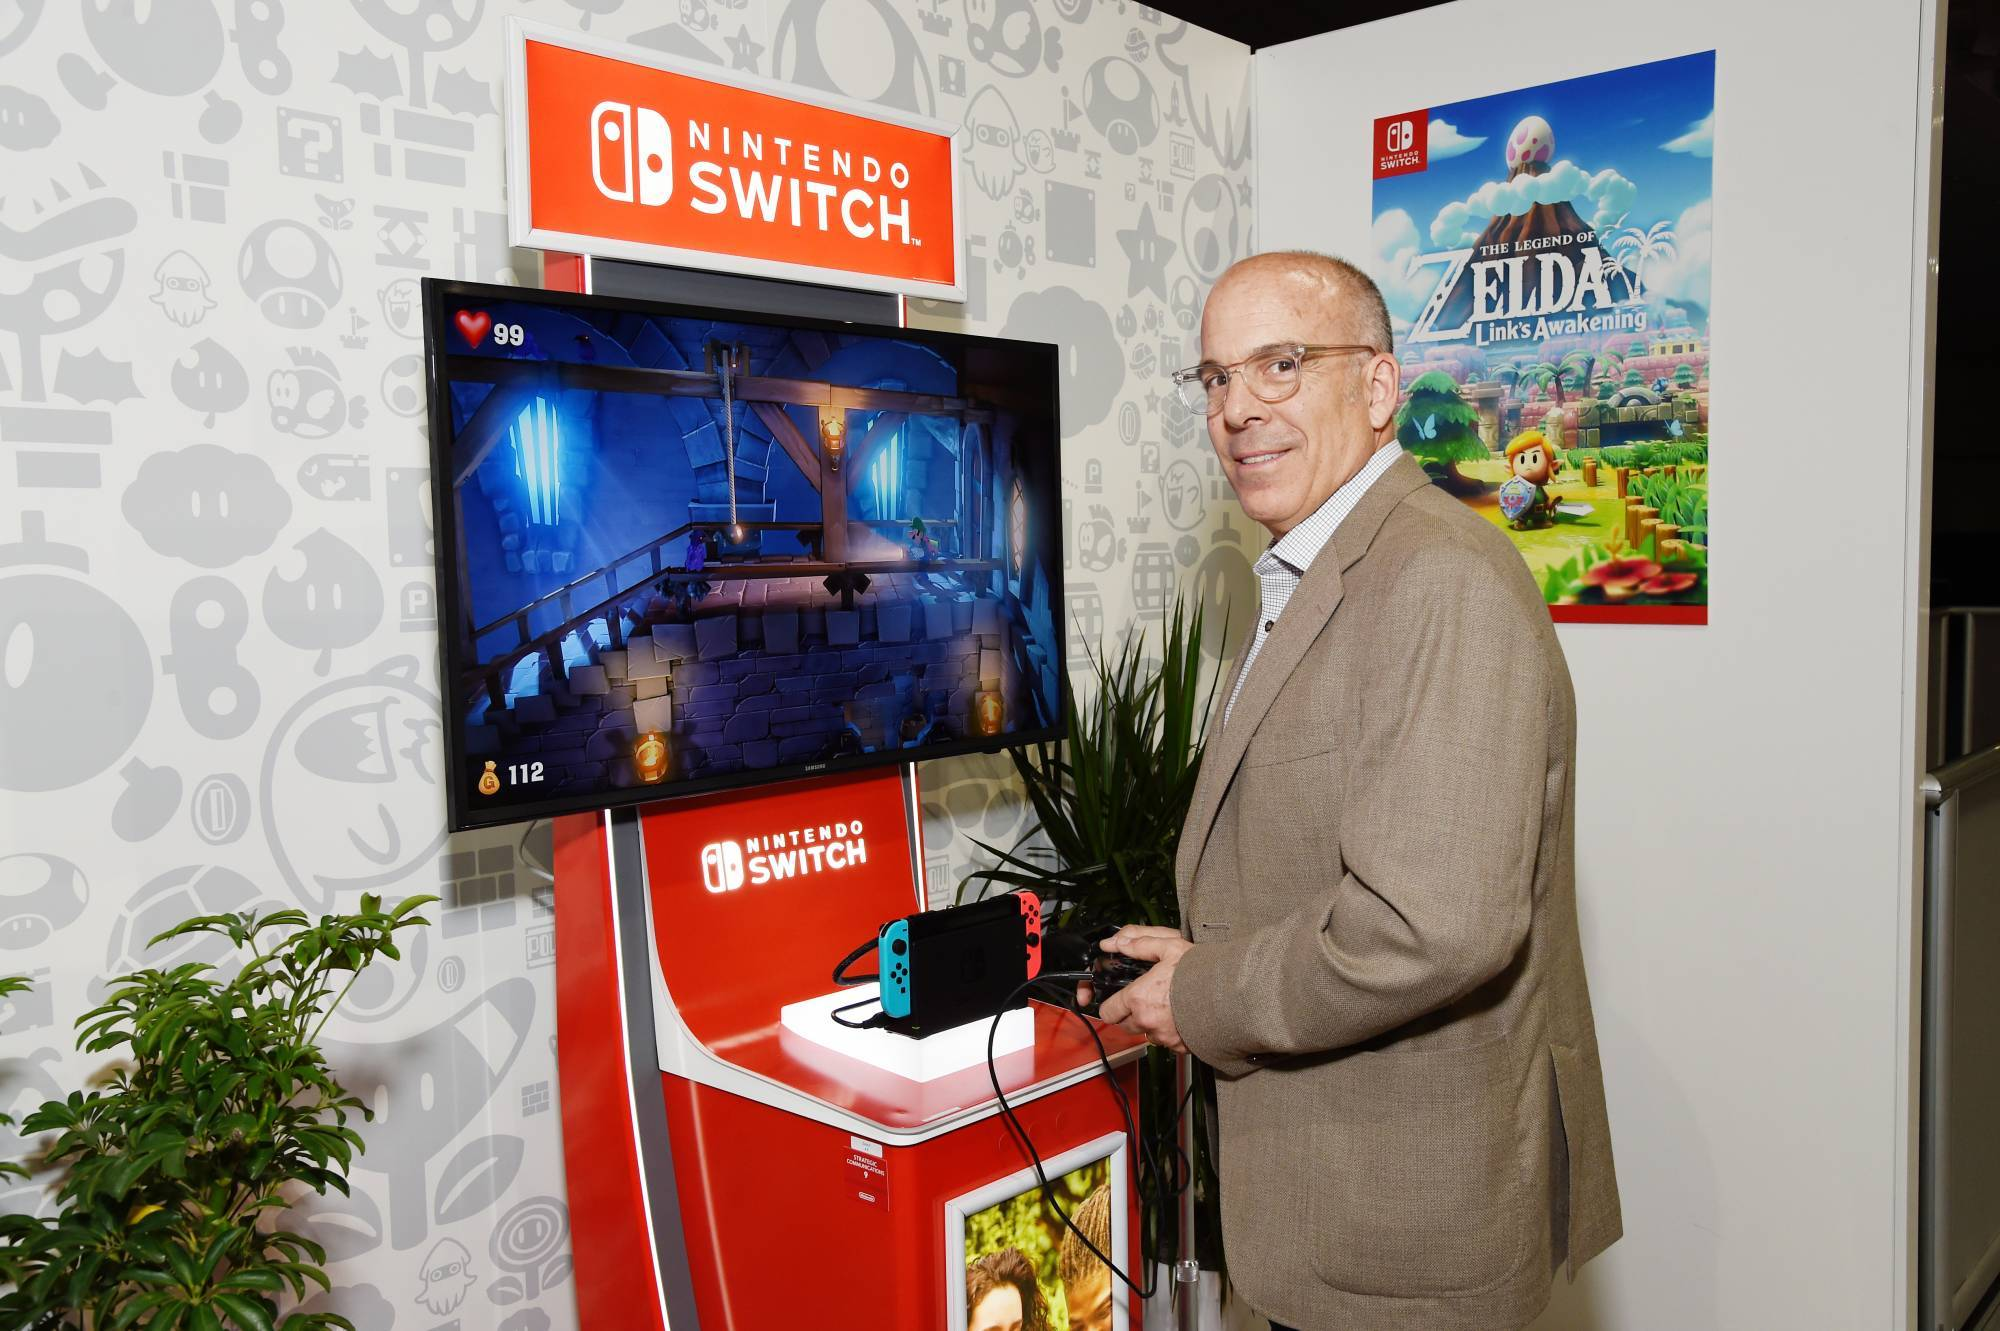 Nintendo Demos New Titles For Nintendo Switch For Celebrities At 2019 E3 Gaming Convention